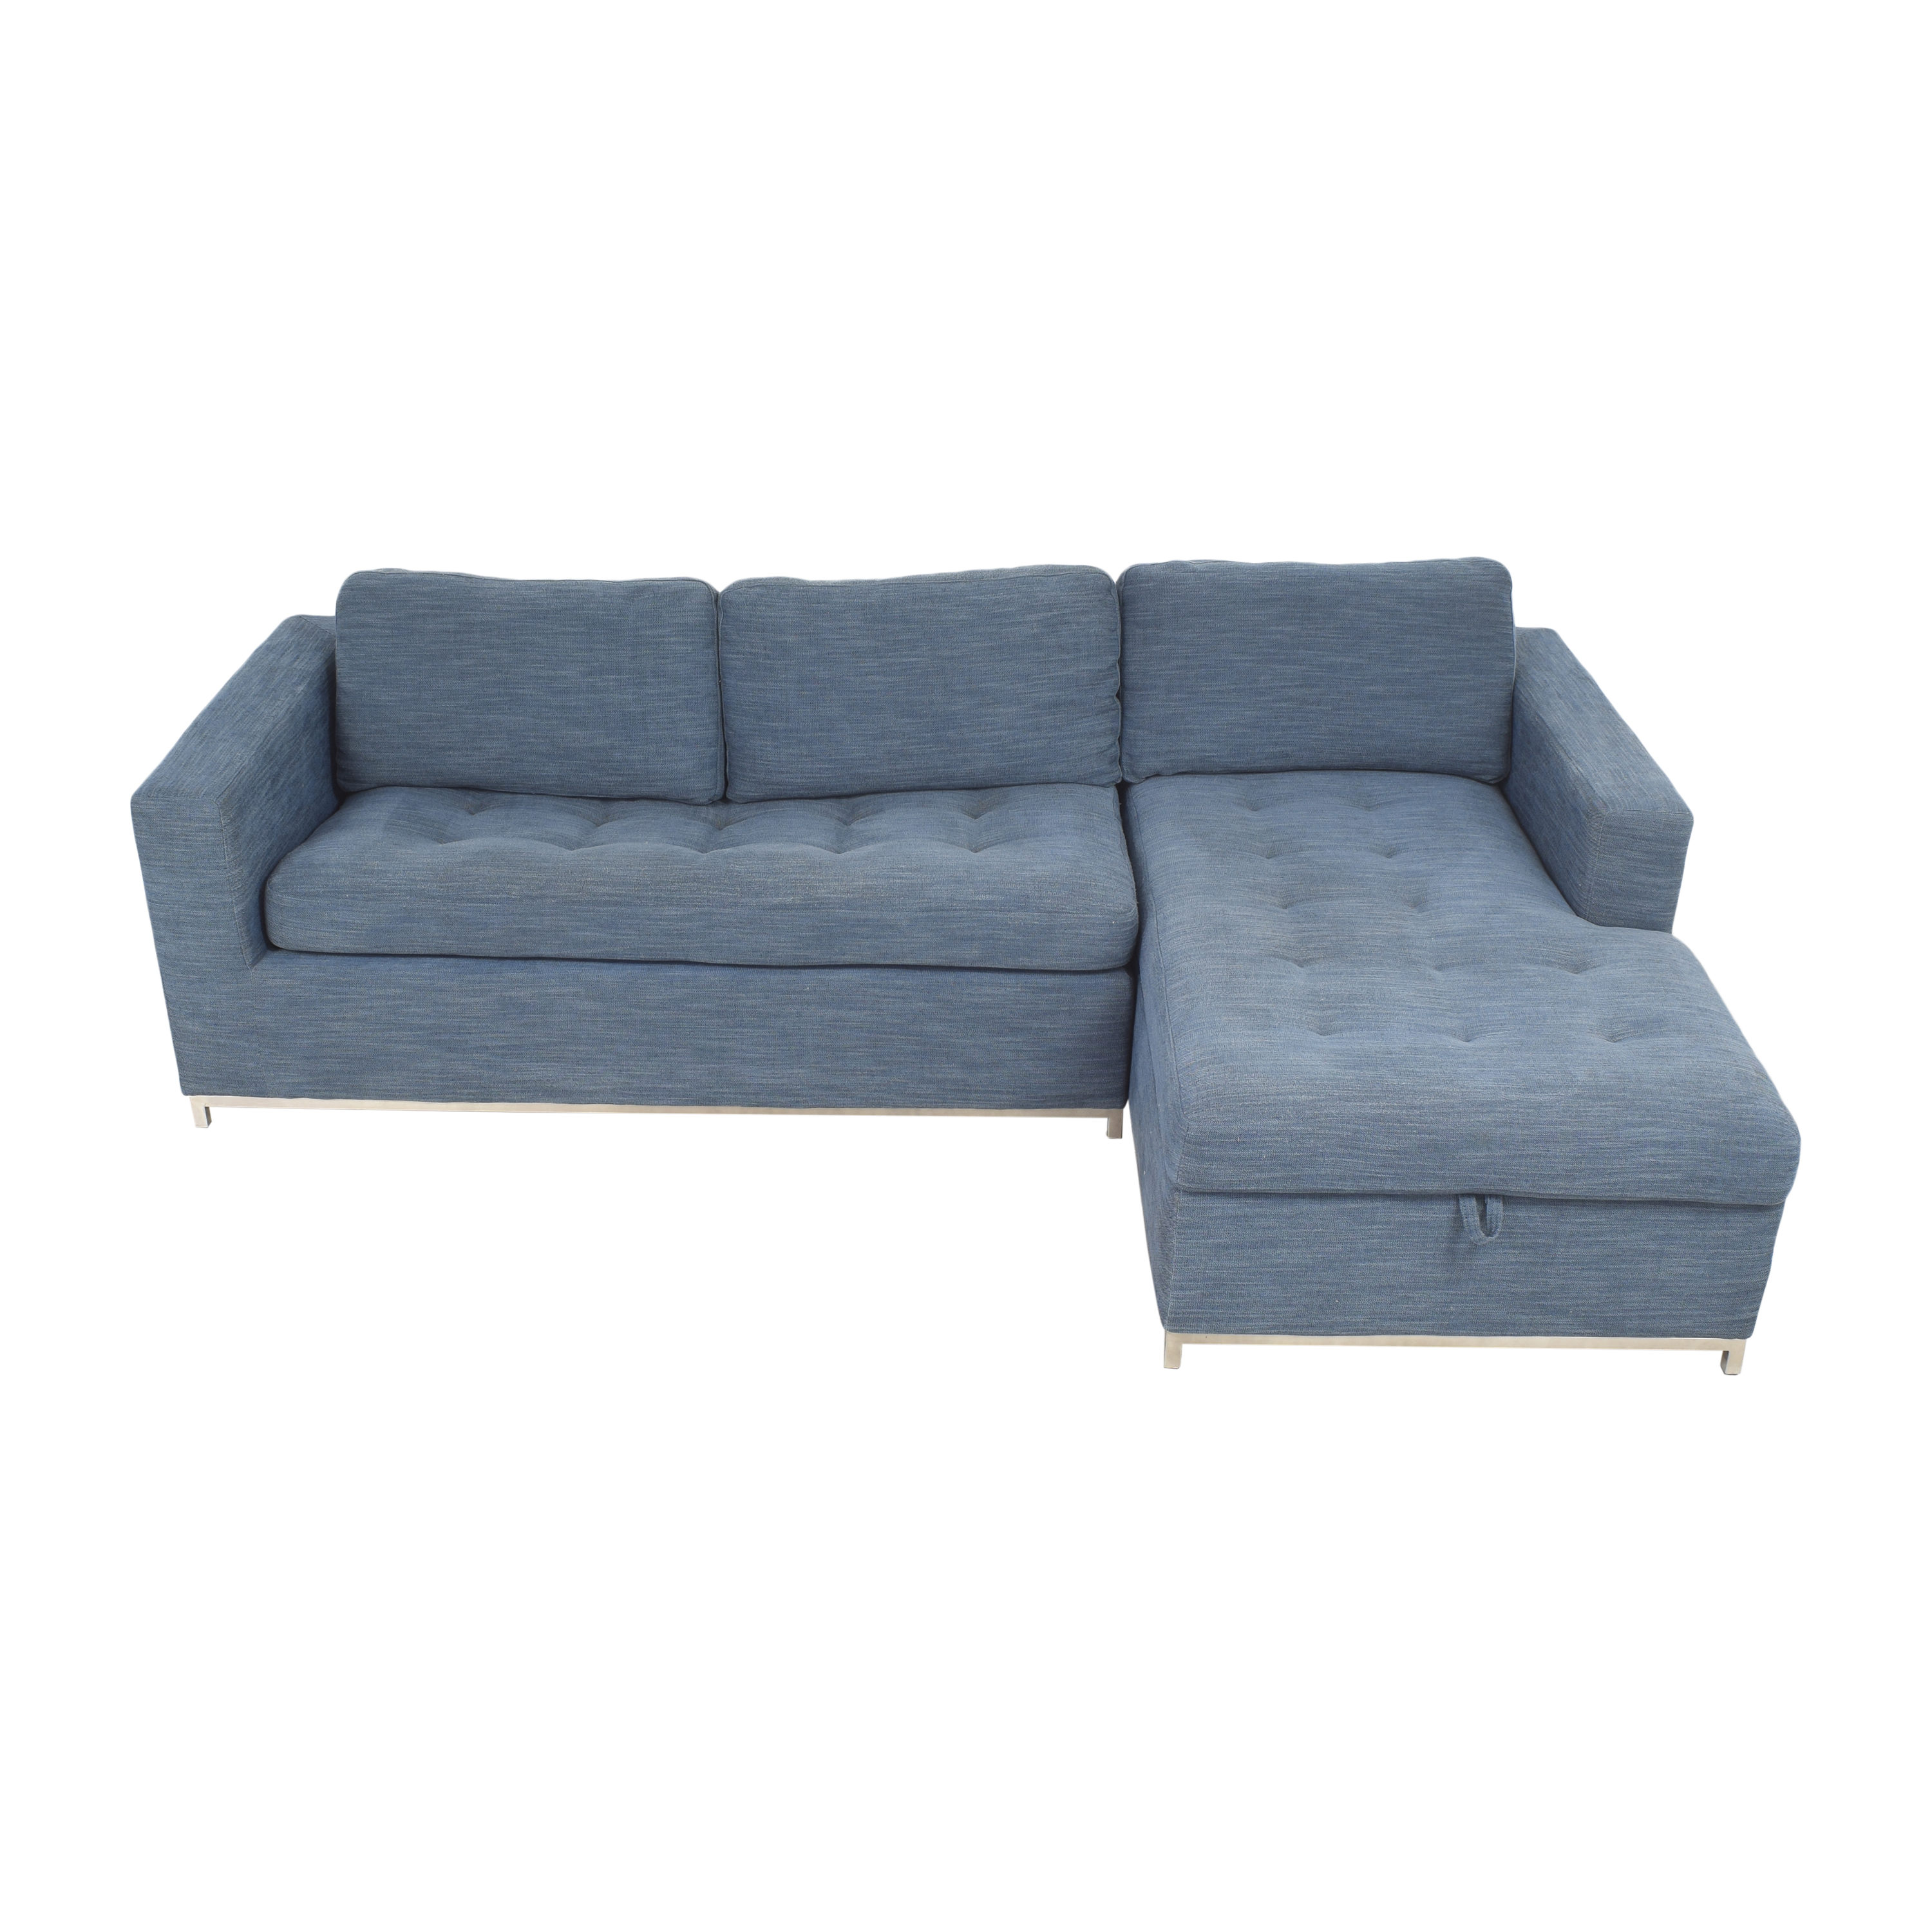 buy Article Soma Sectional Sofa Bed Article